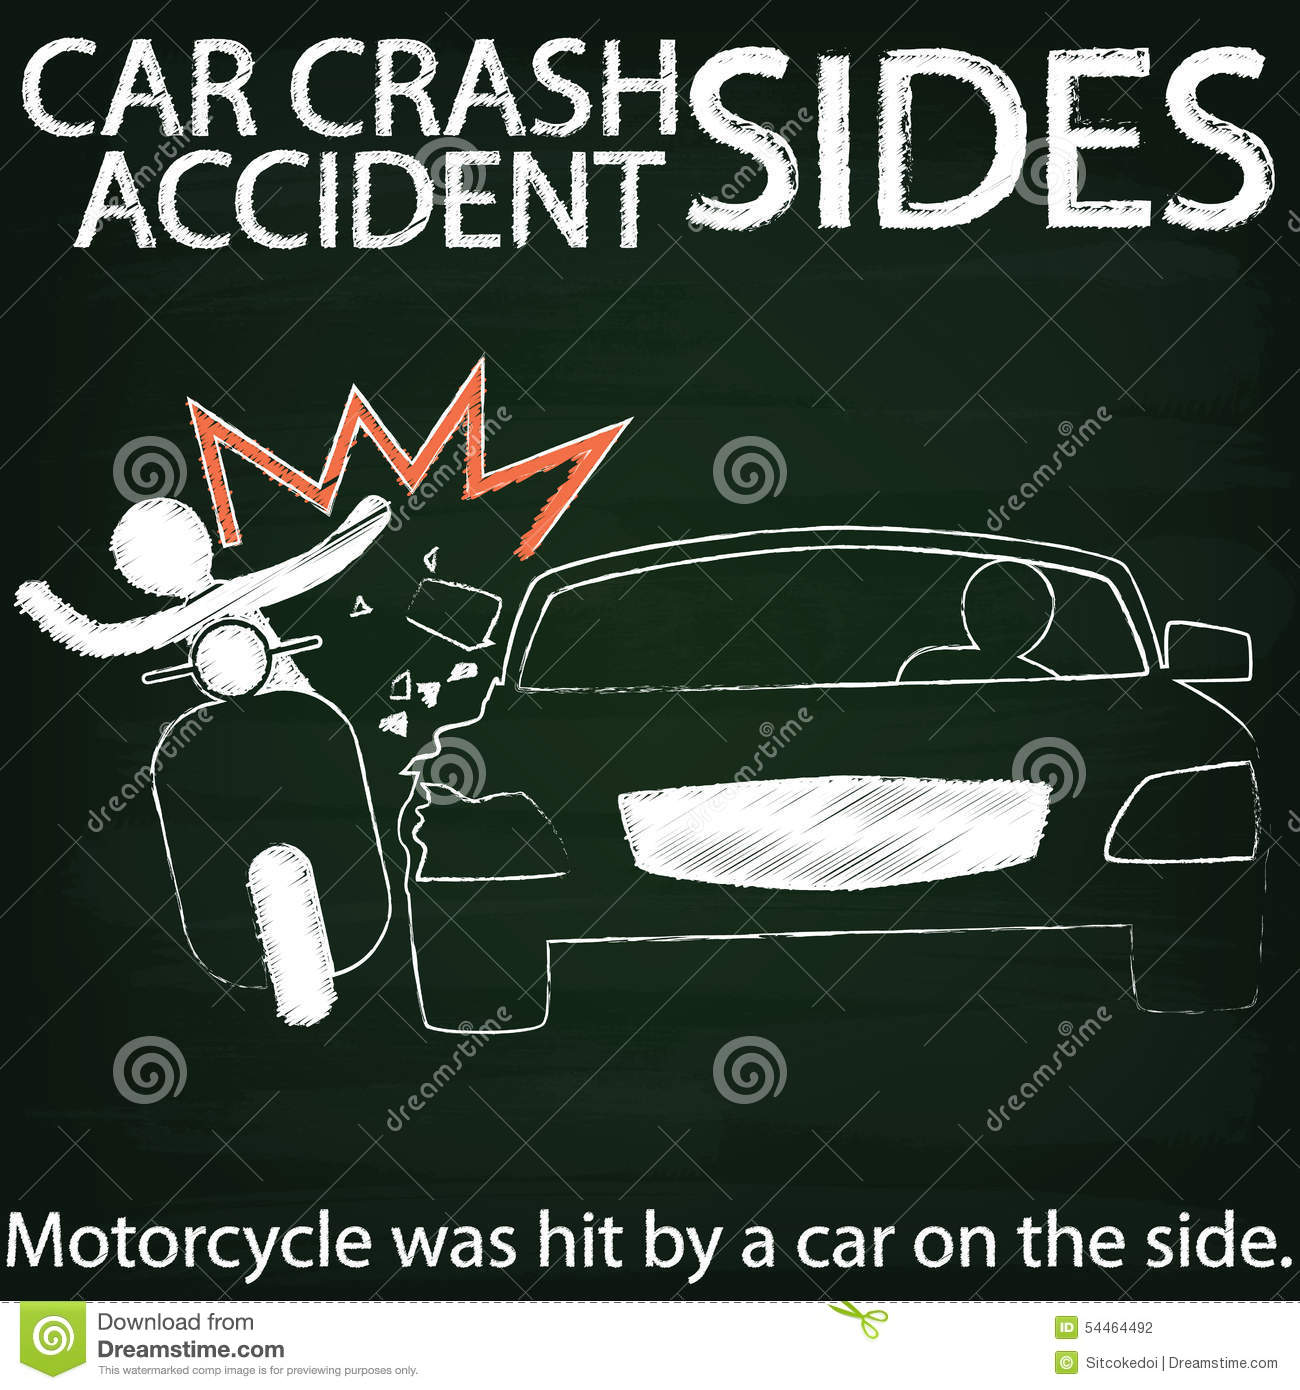 Lesbian car crash road sign motorbike